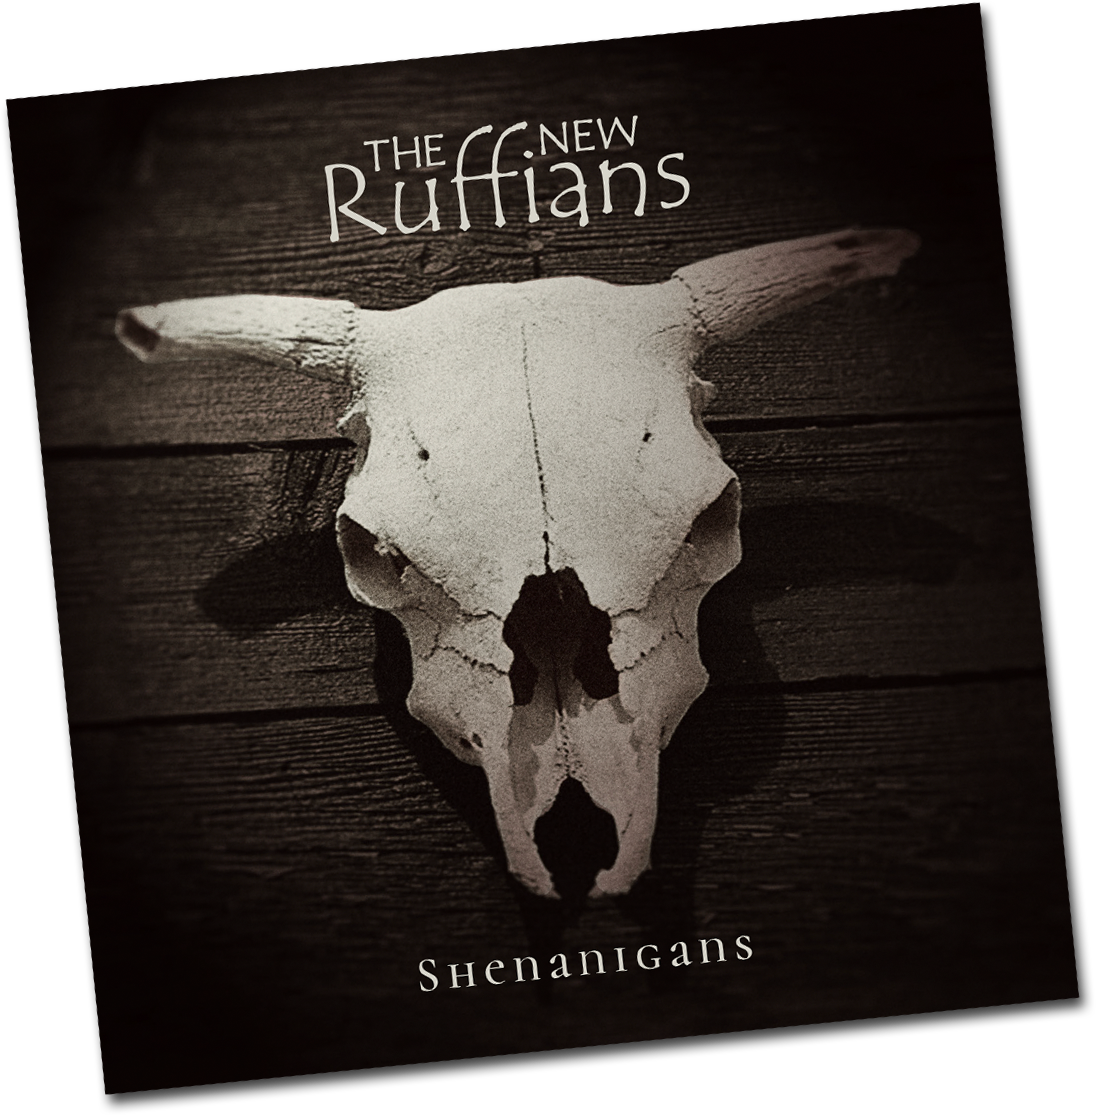 Shenanigans by The New Ruffians